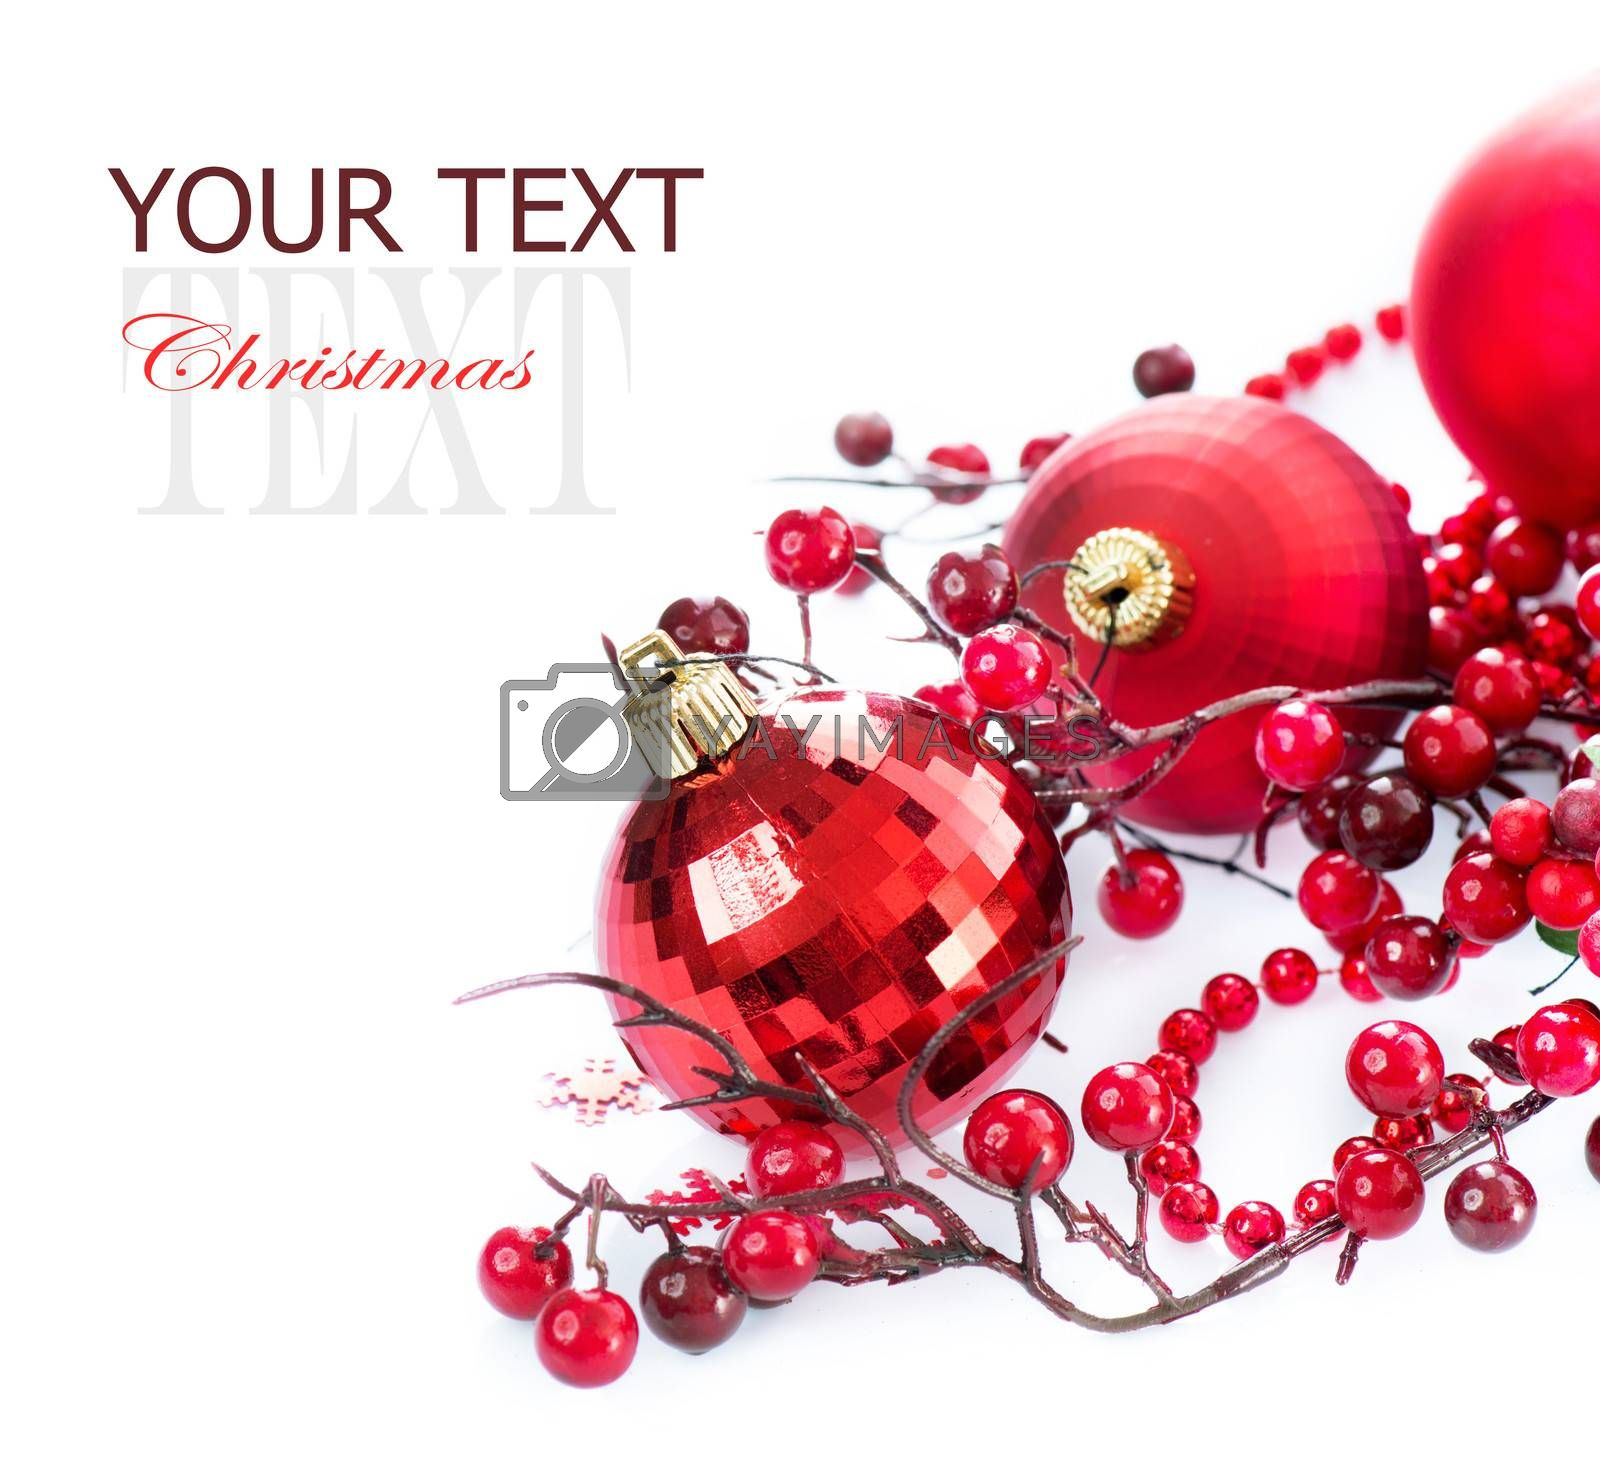 Christmas Baubles and Decoration isolated on White